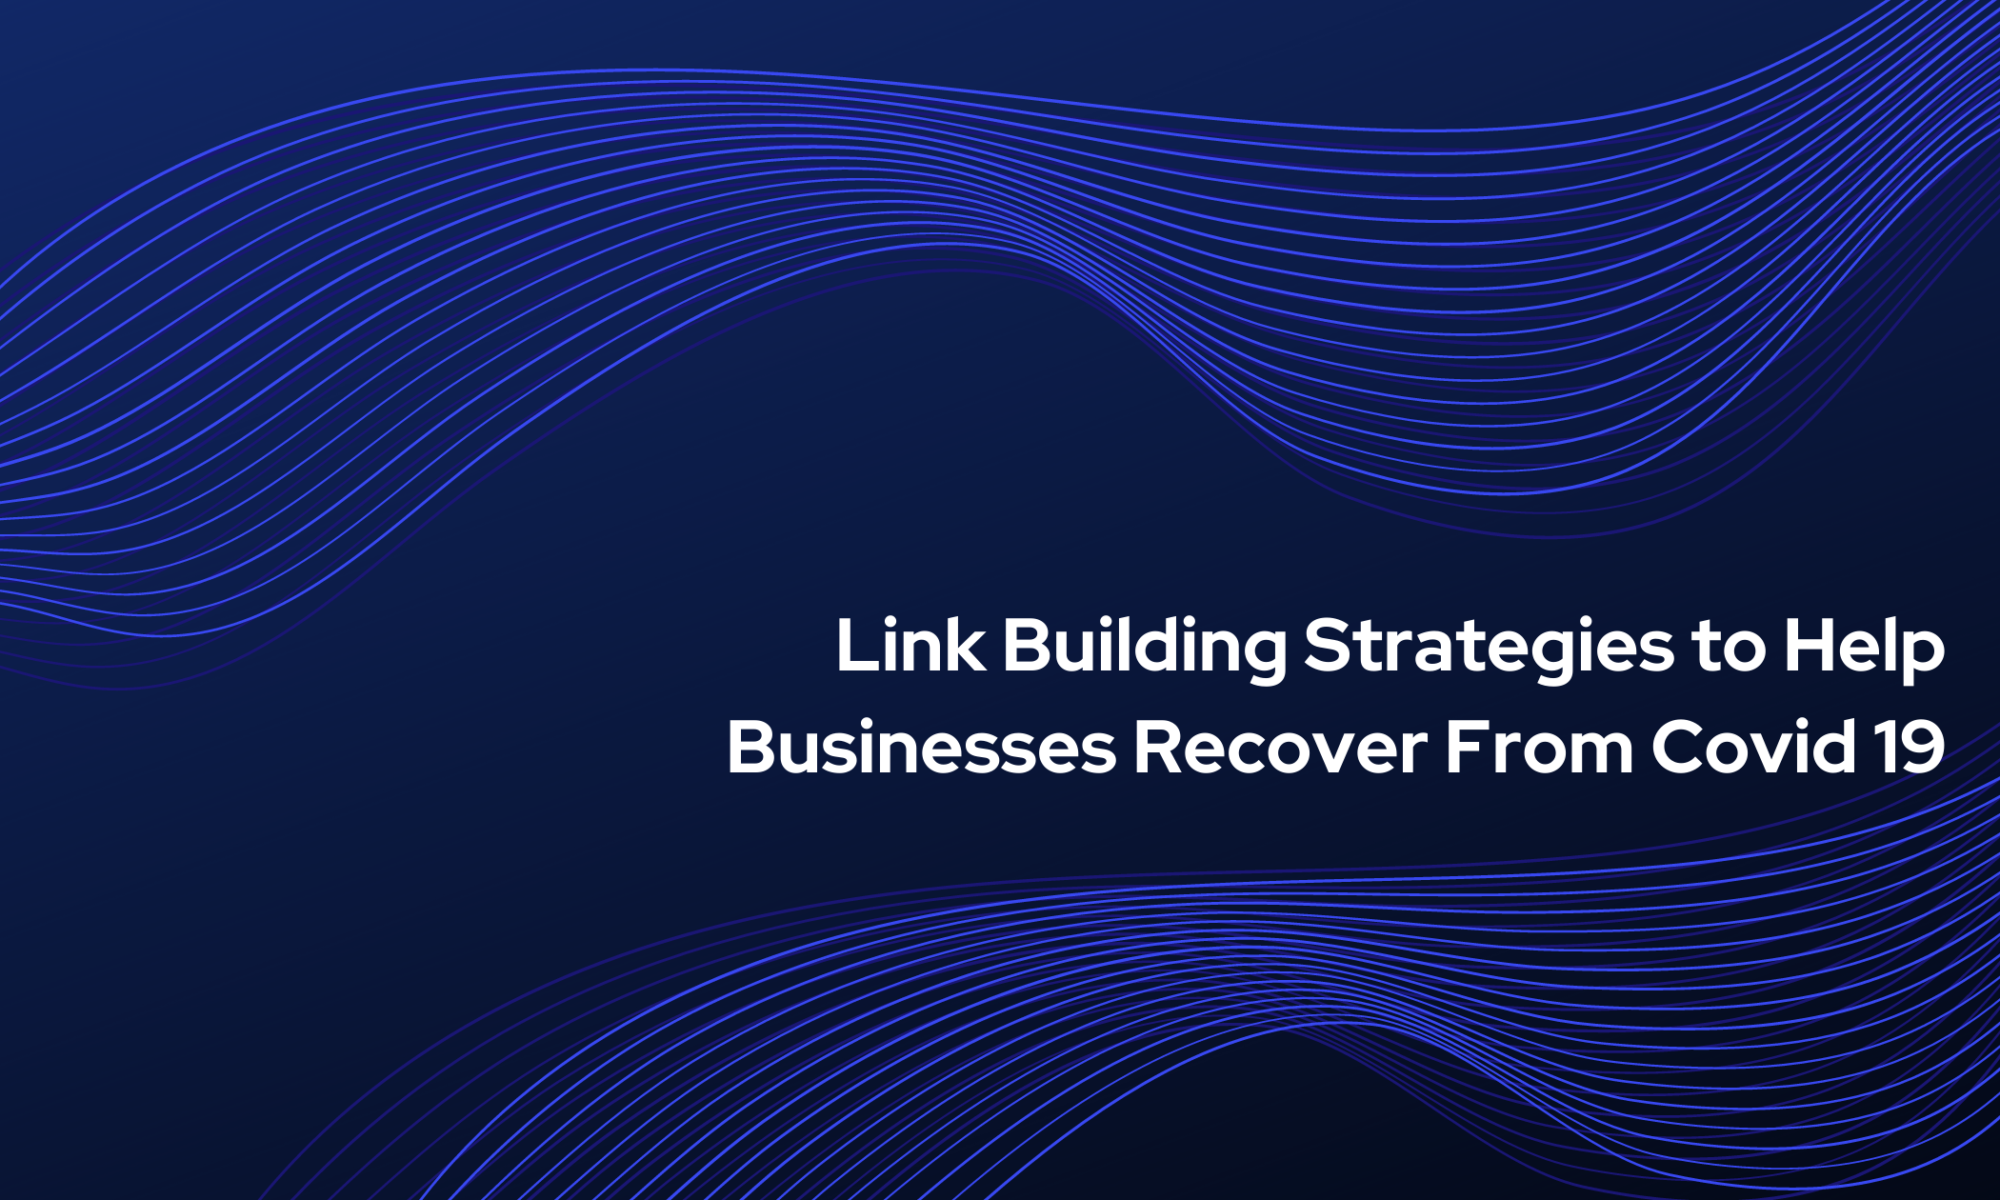 Link Building Strategies to Help Businesses Recover From Covid 19